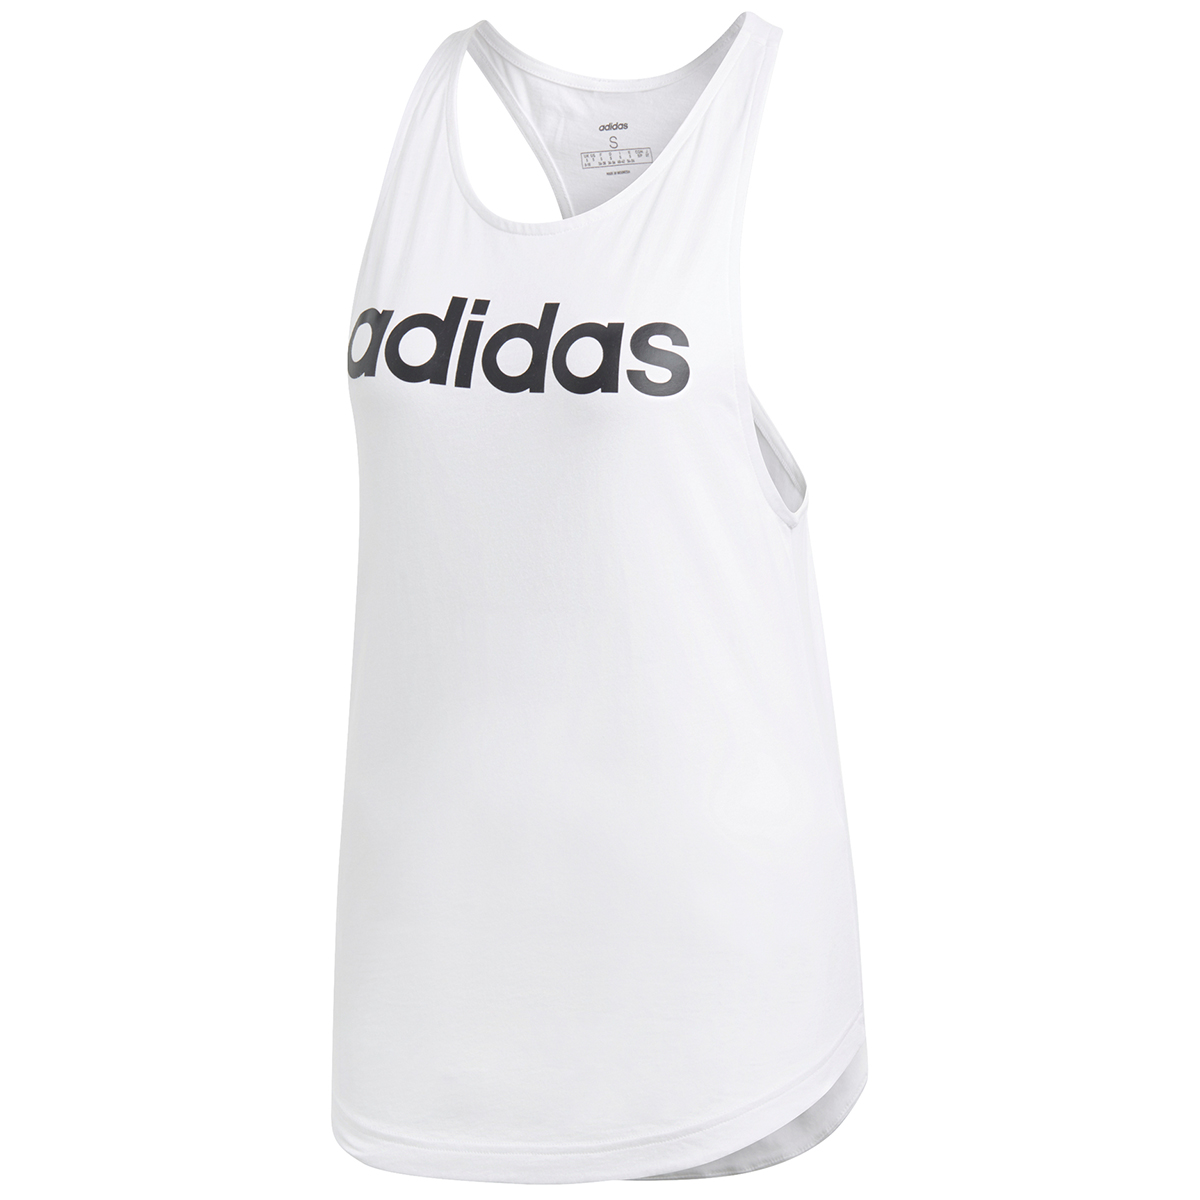 Adidas Women's Essentials Linear Loose Tank Top - White, L